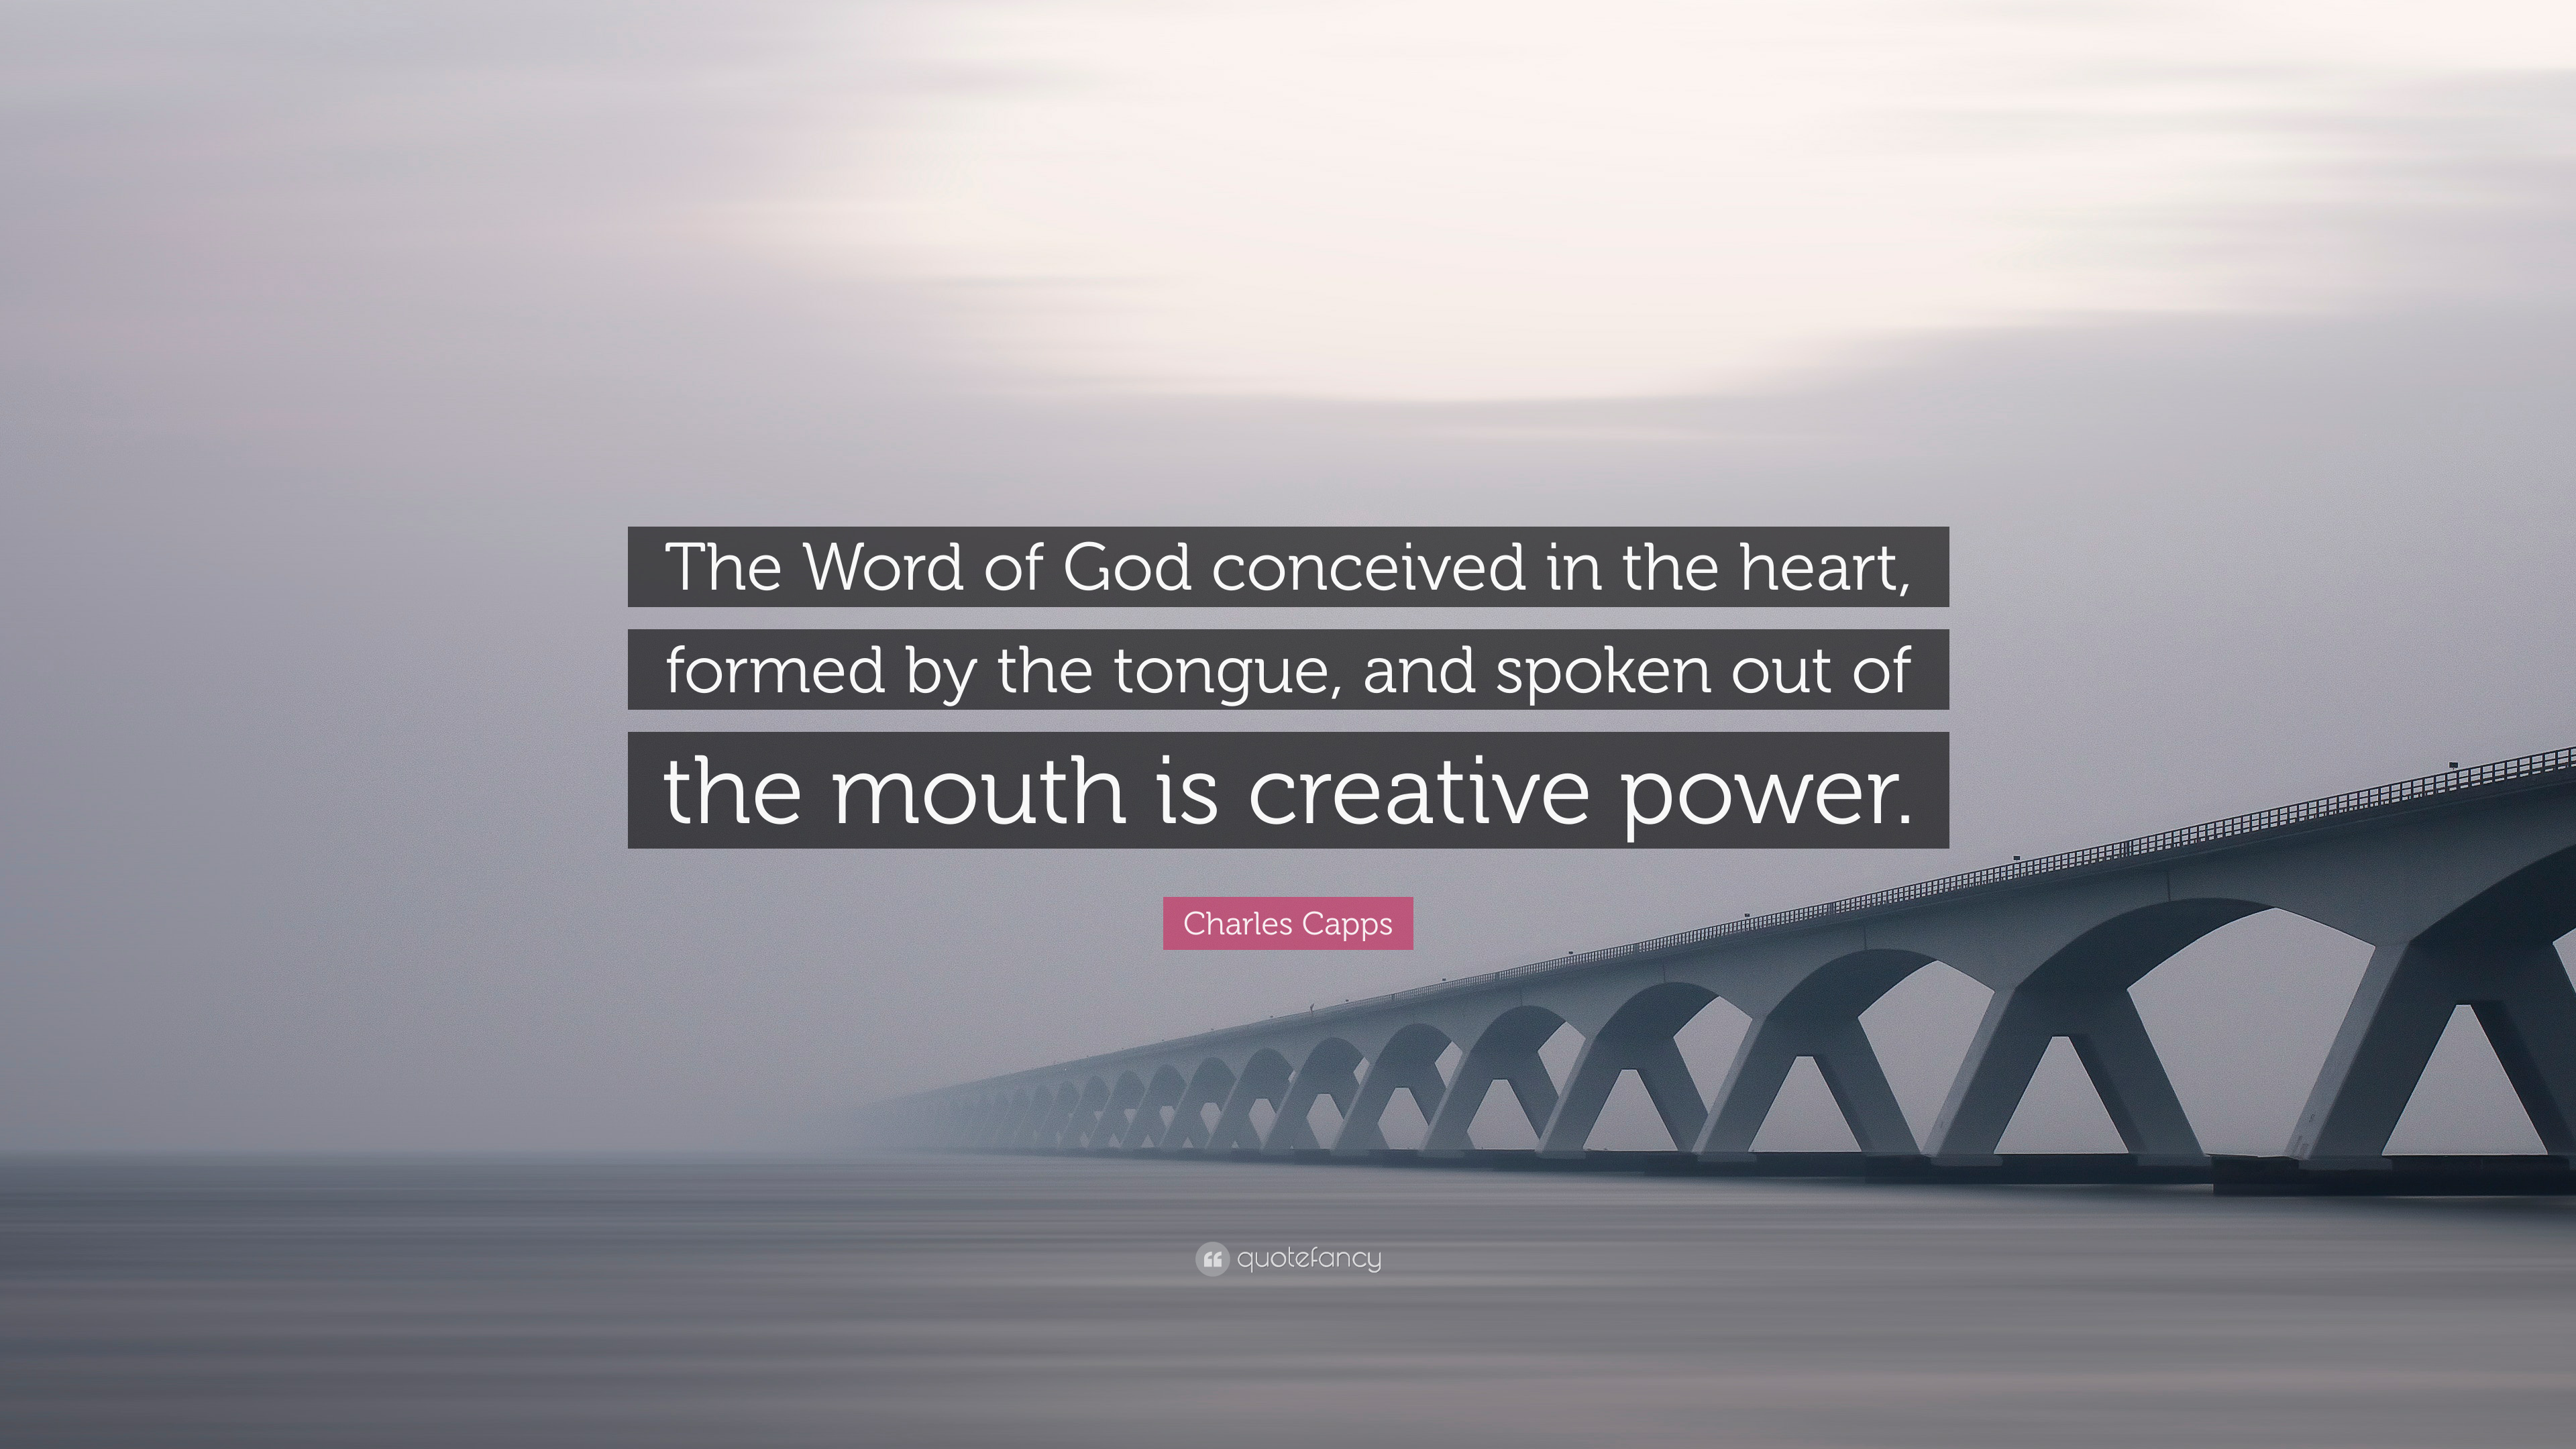 God's Word is Creative Power